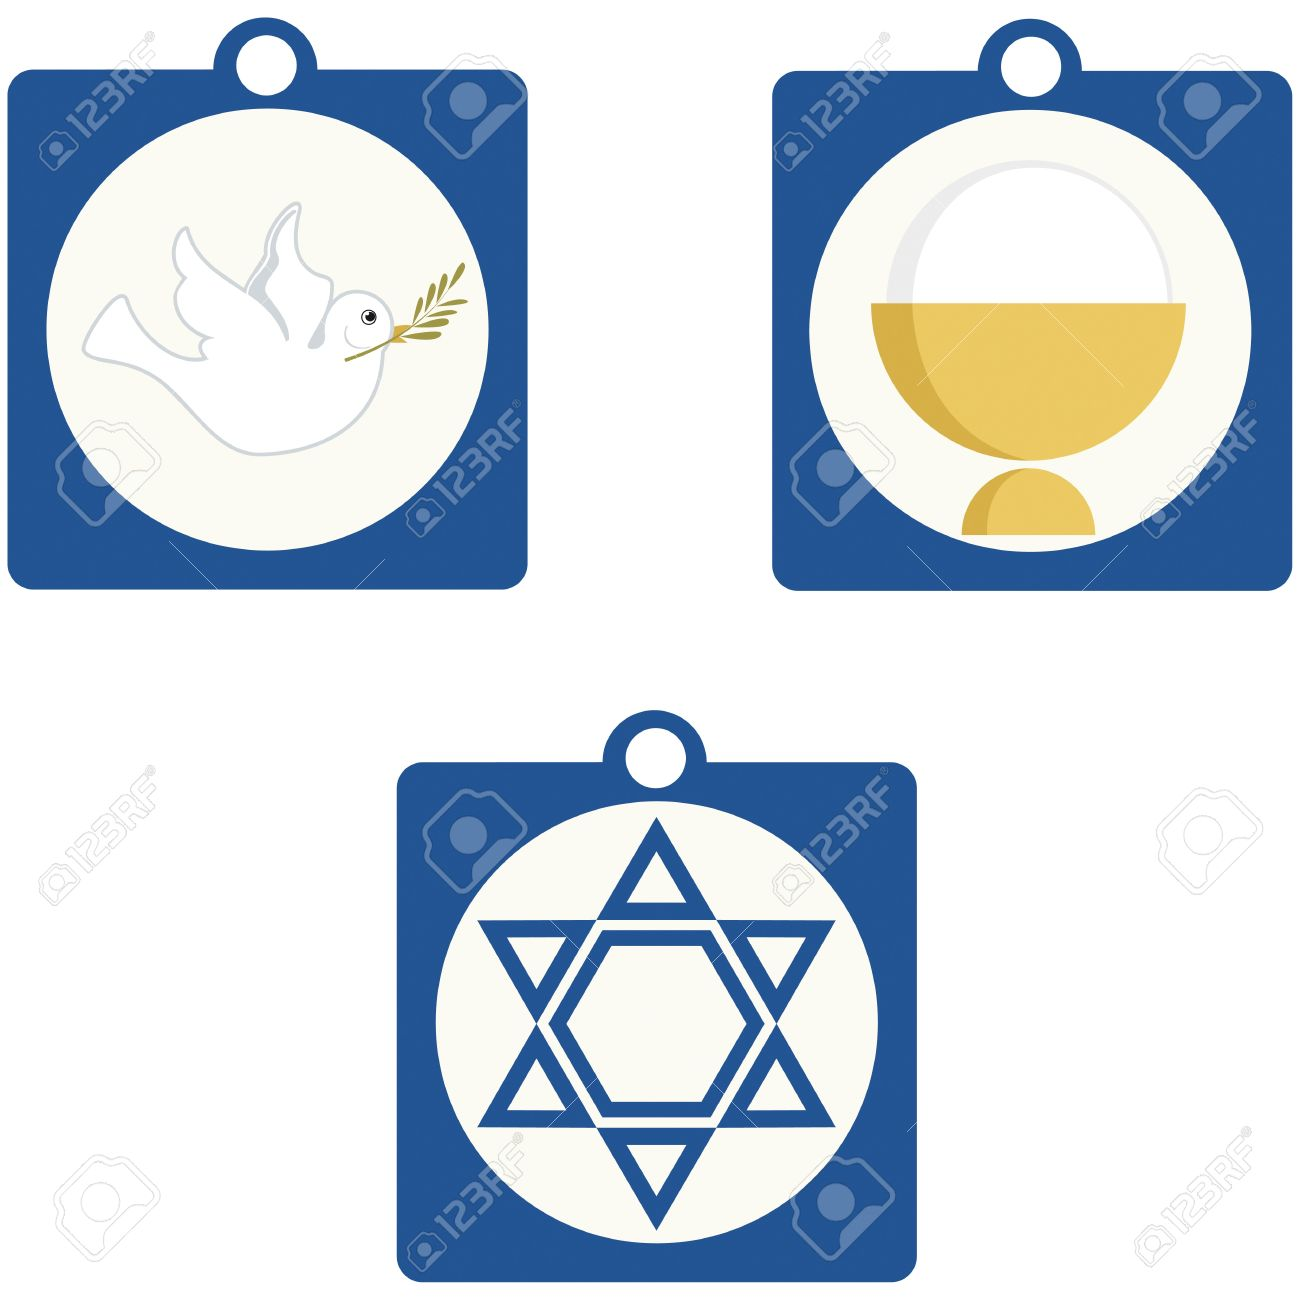 Christian And Jewish Religious Symbols Royalty Free Cliparts